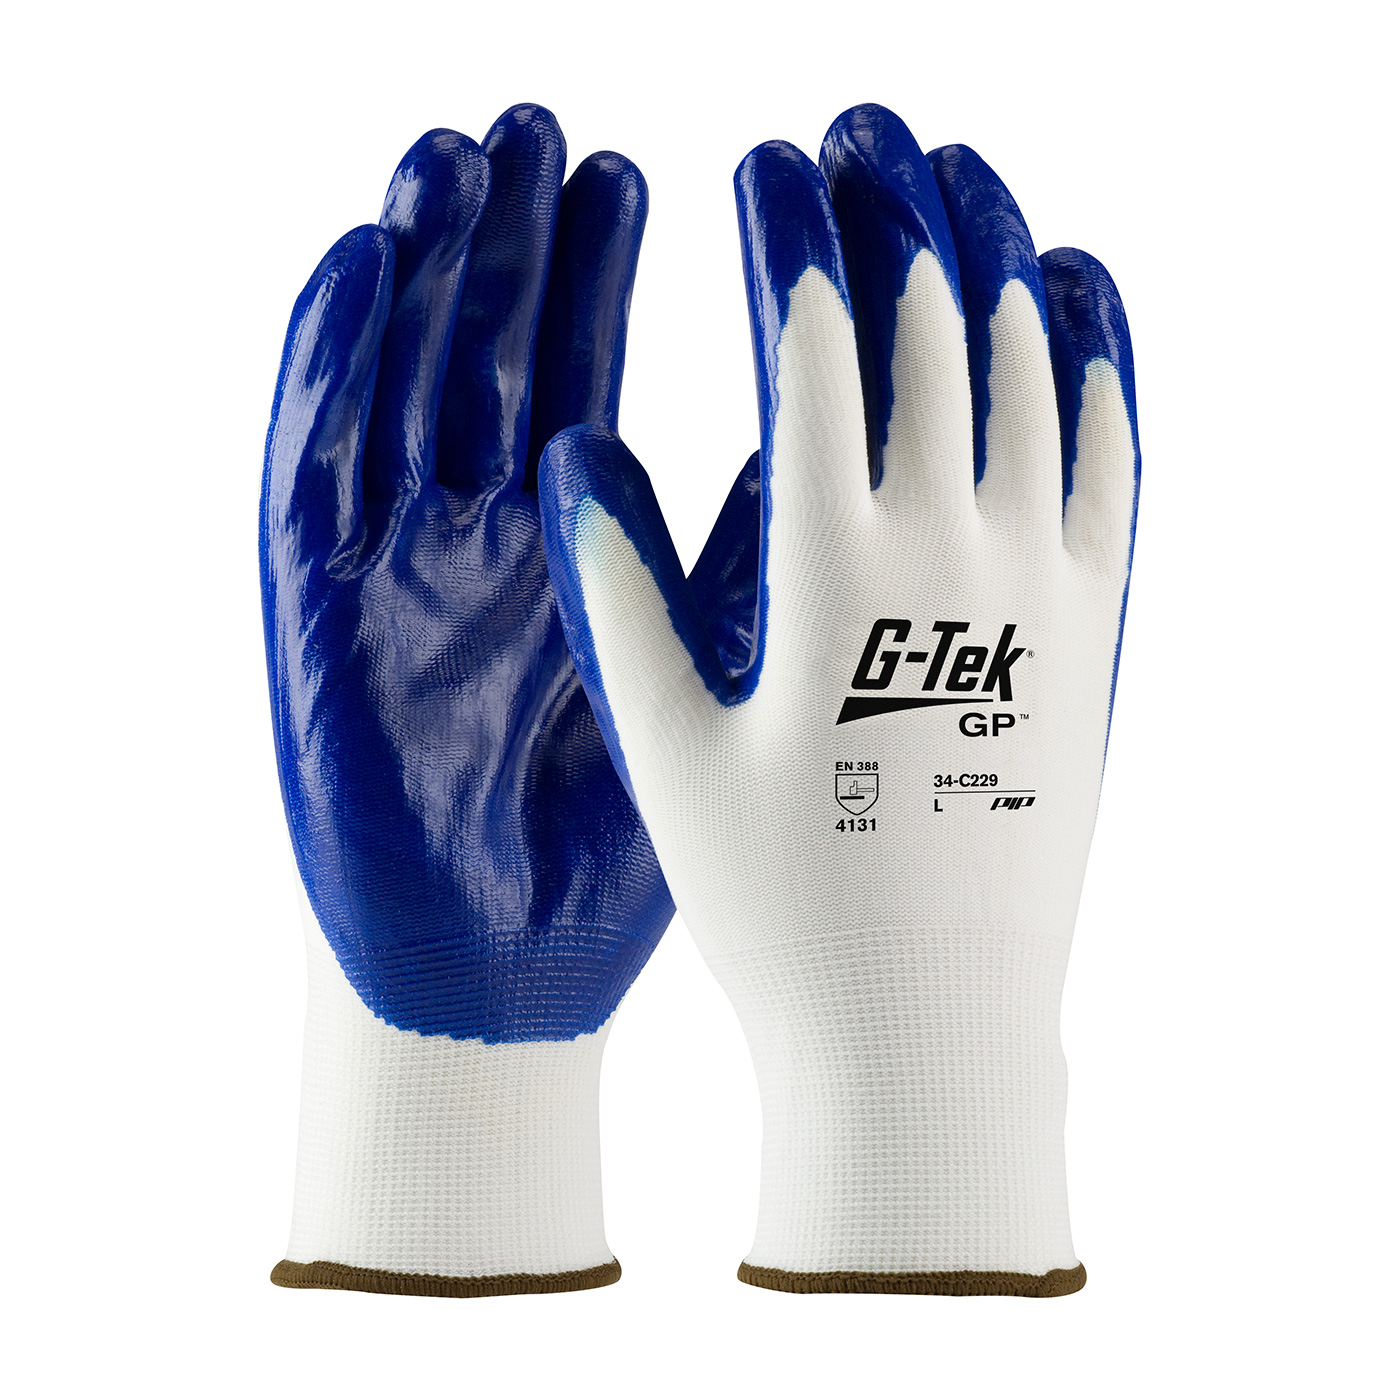 PIP® G-Tek® GP™ Seamless Knit Nylon Glove with Nitrile Coated Smooth Grip on Palm & Fingers #34-C229